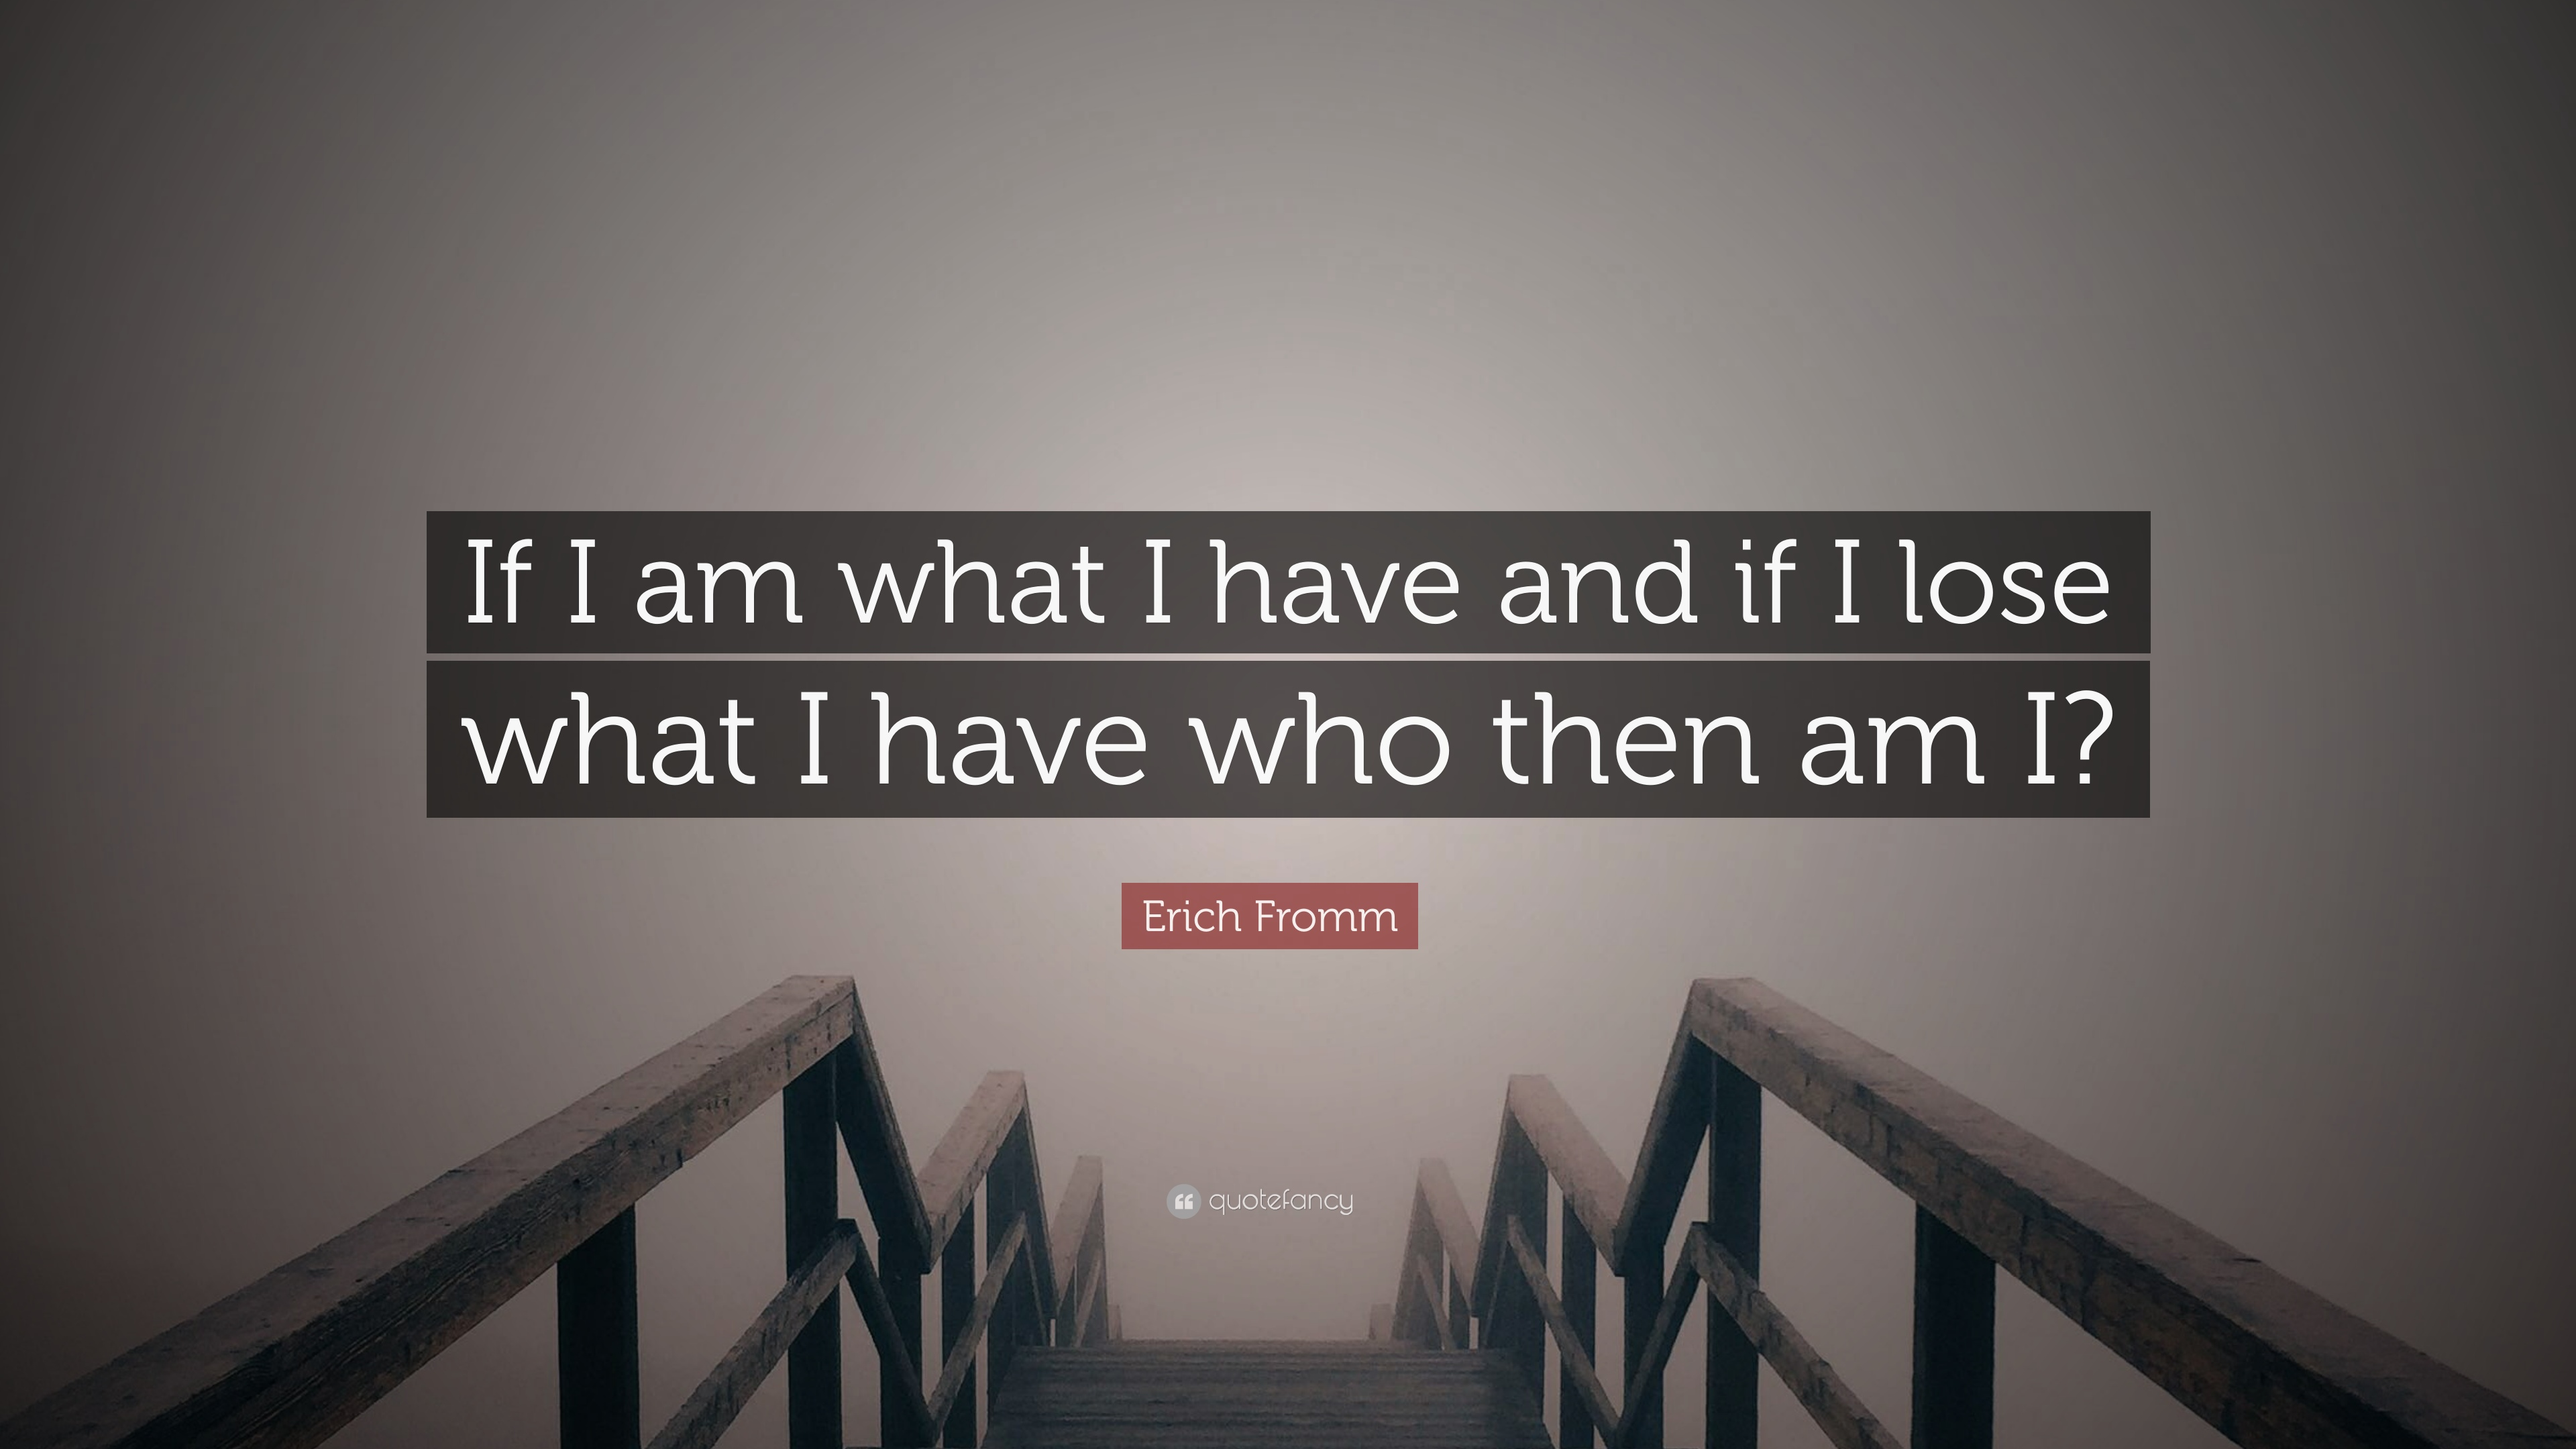 Backed our I Erich Fromm Am If I Have What Quotes think you